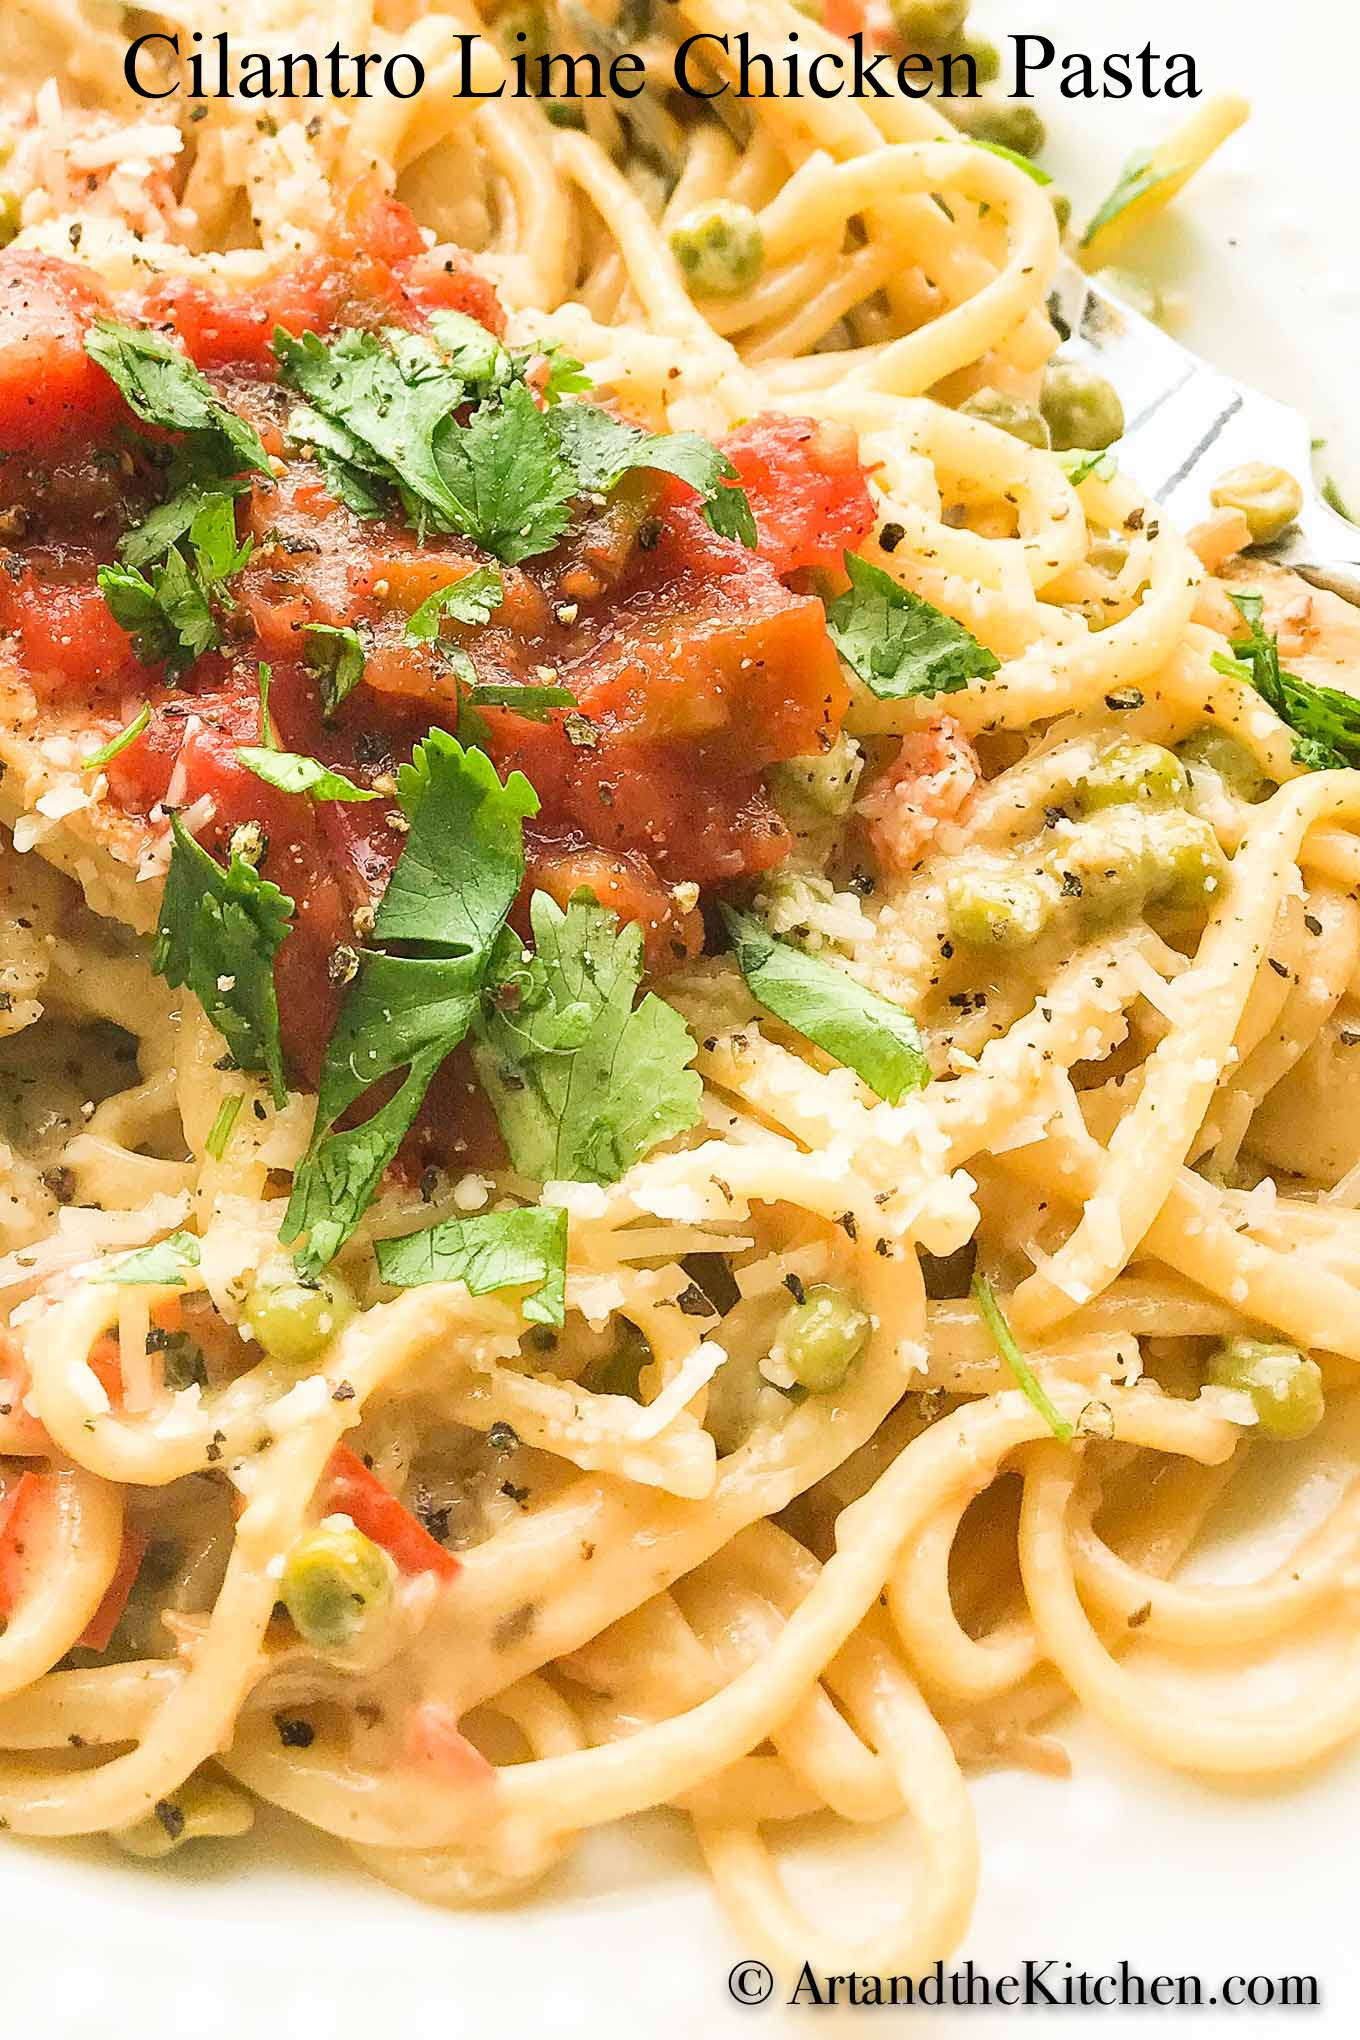 Cilantro Lime Chicken Pasta